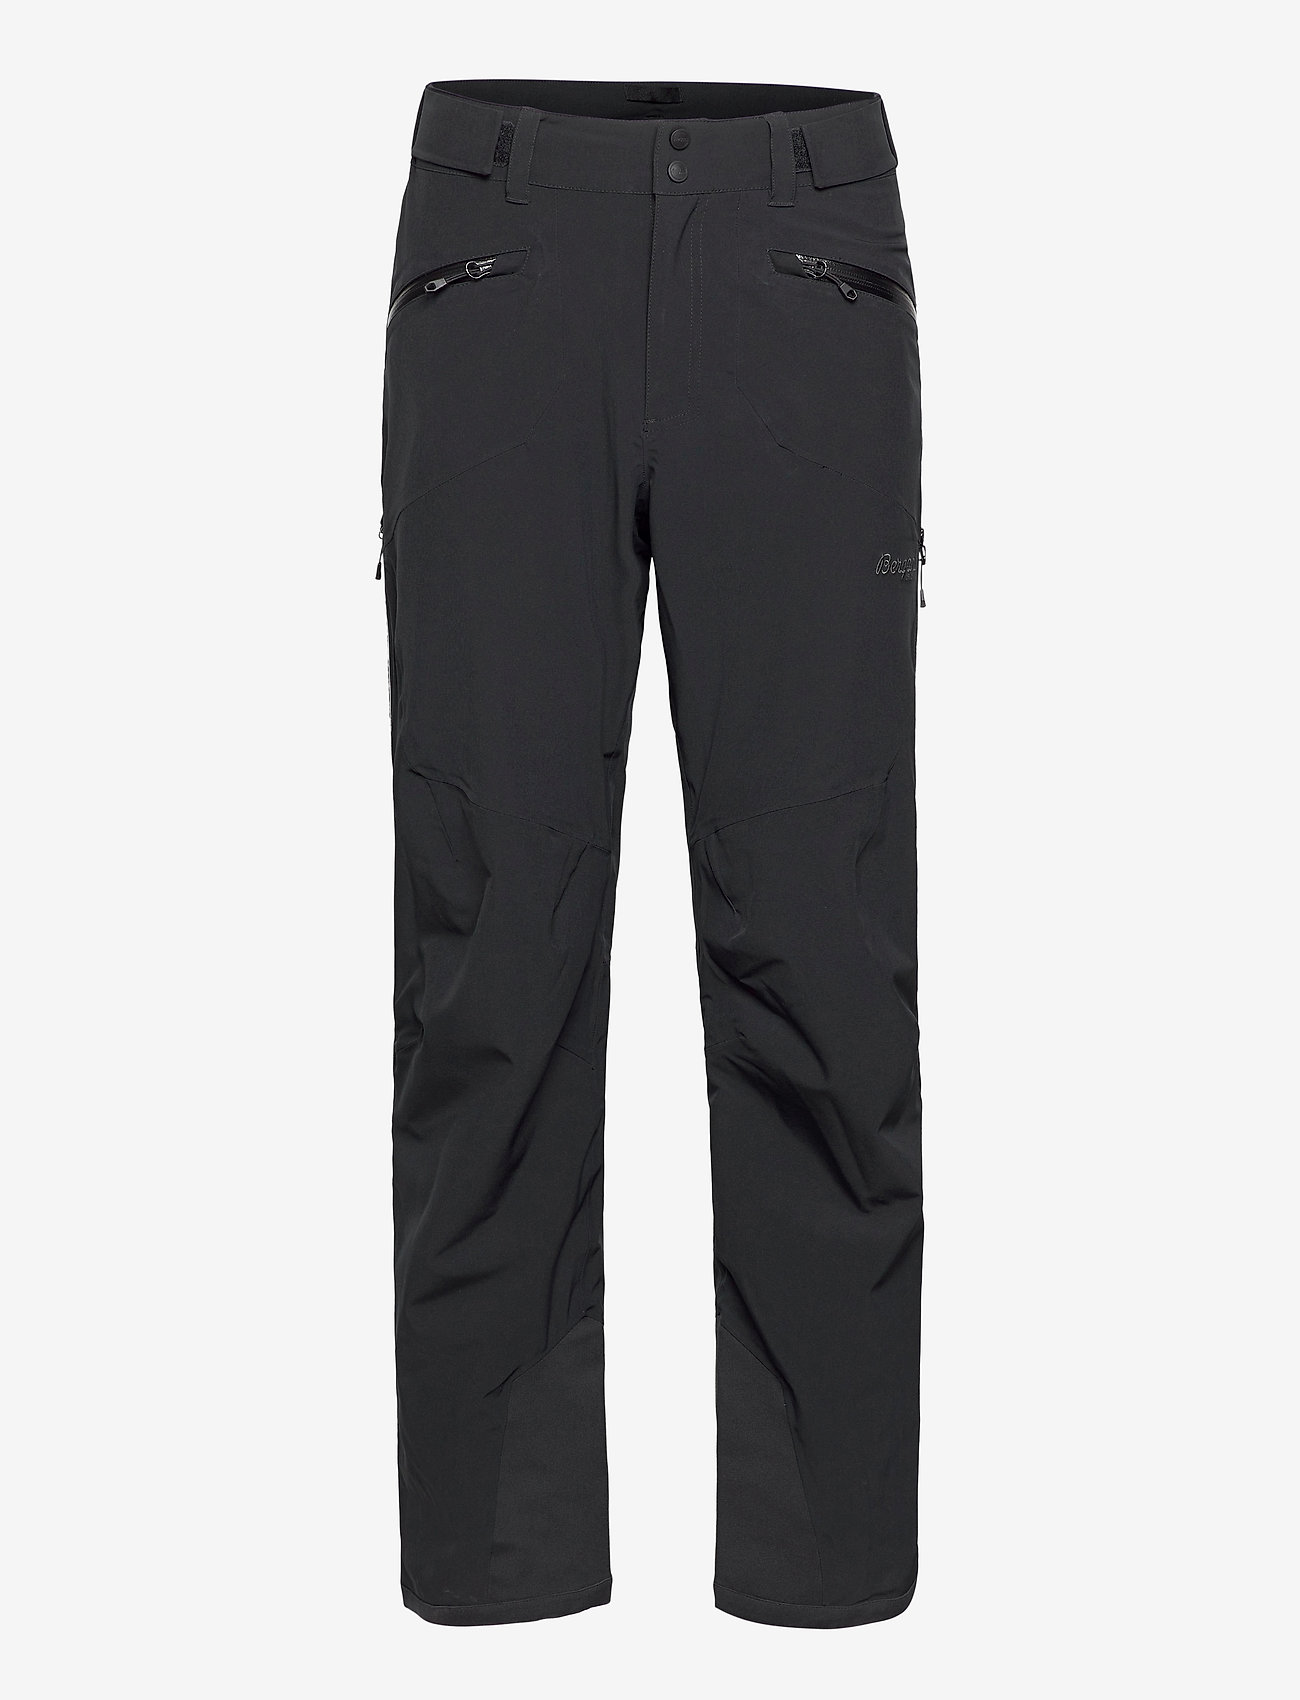 Bergans - Oppdal Pnt - skiing pants - black / solid charcoal - 0